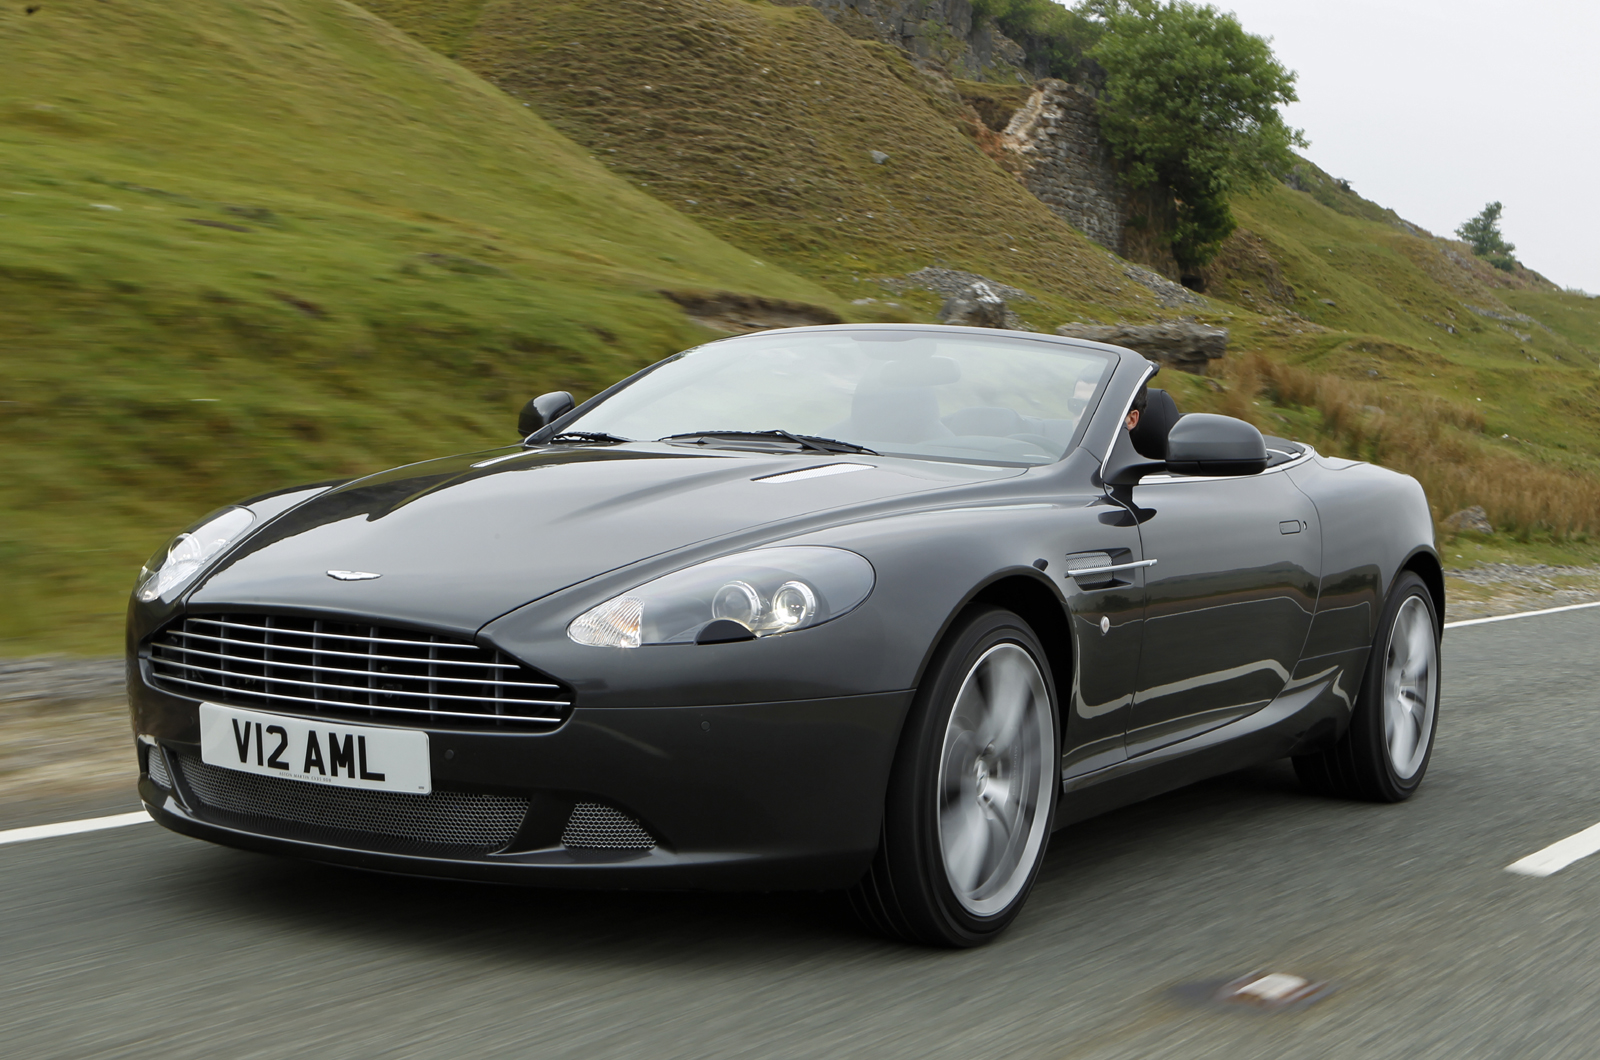 aston martin db9 volante touchtronic review | autocar